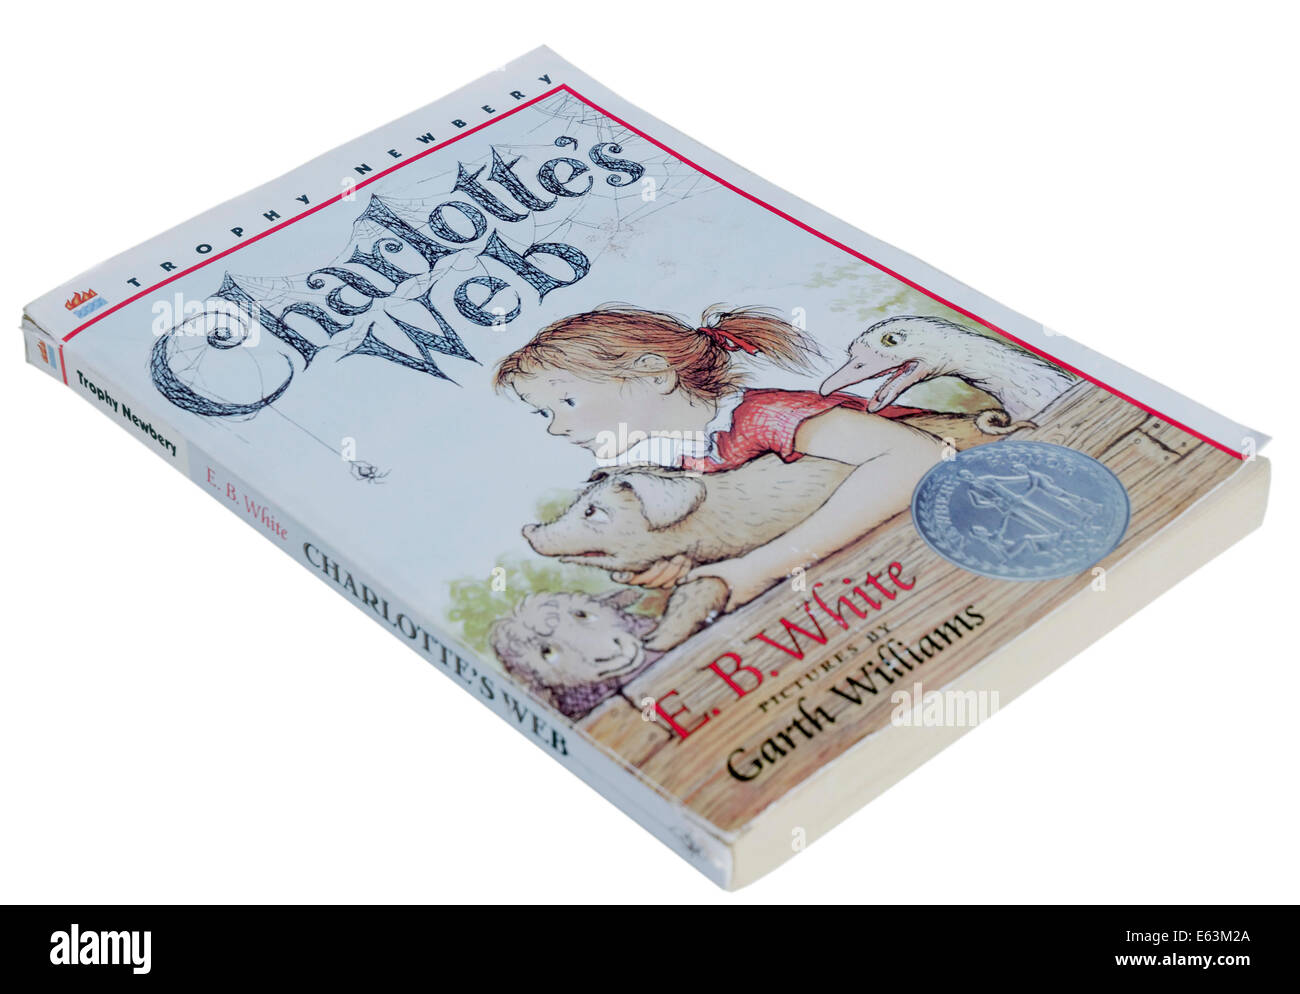 Charlotte's Web by EB White - Stock Image